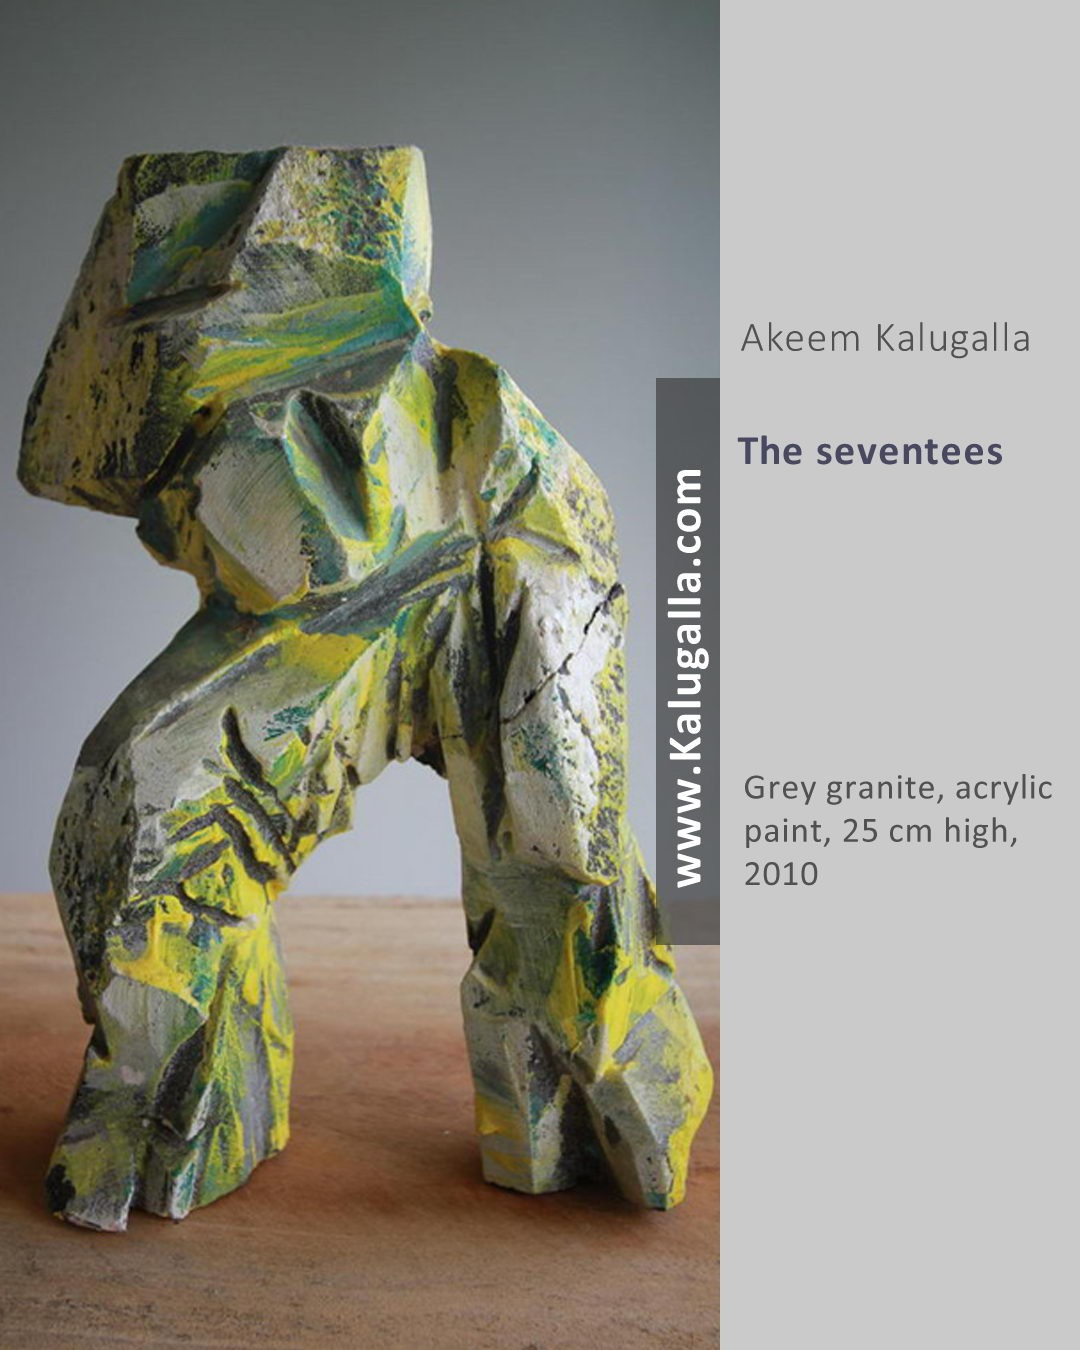 The Seventees by Akeem Kalugalla